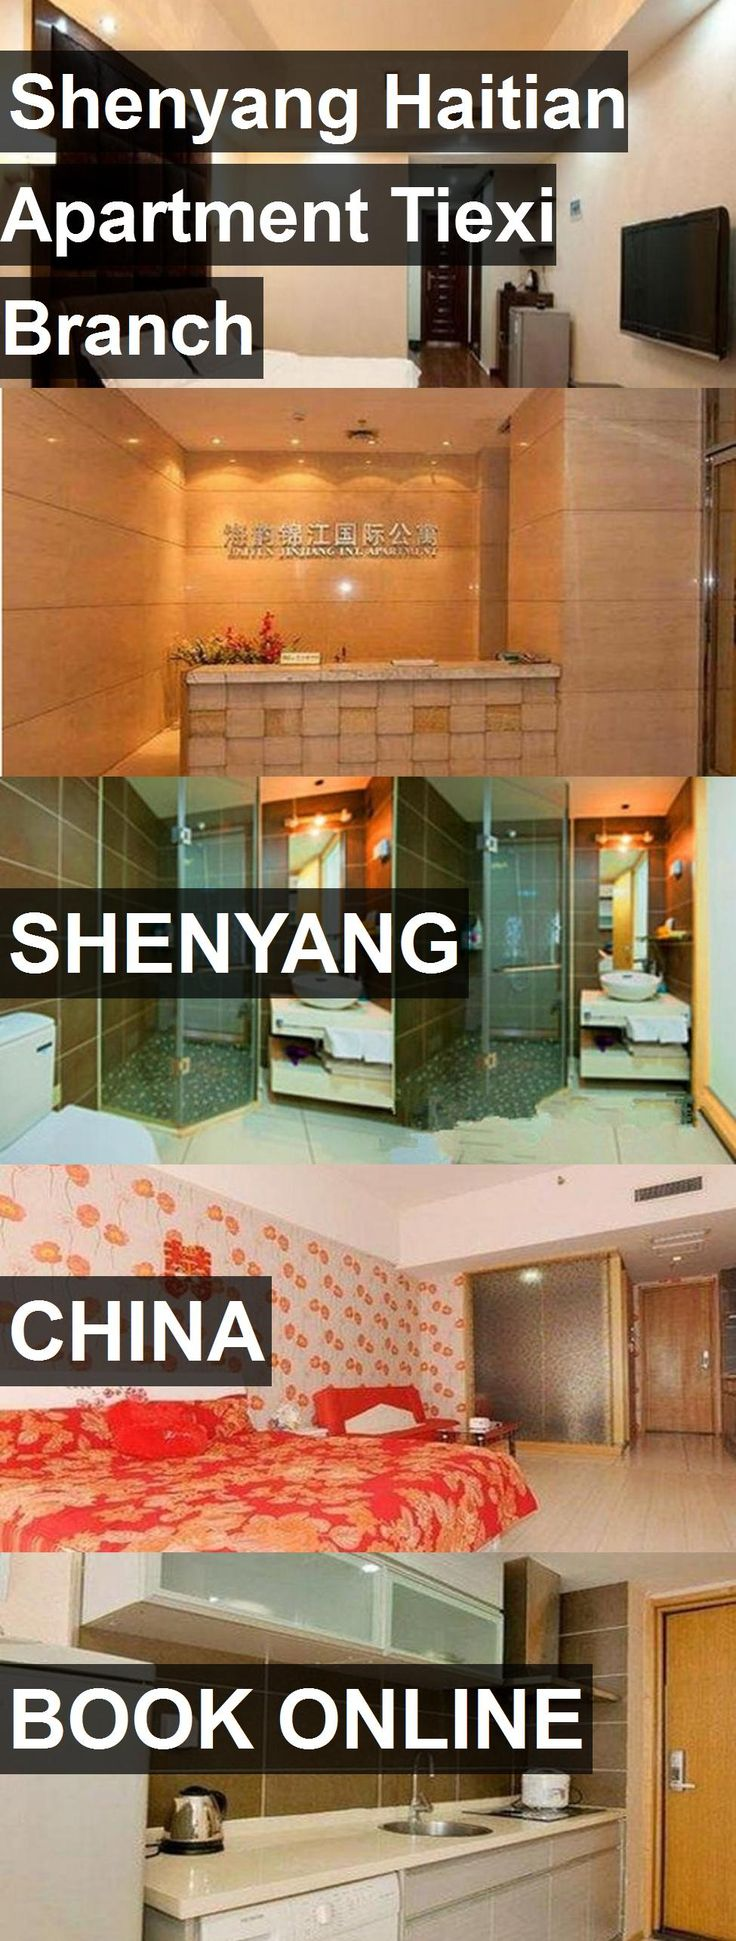 Hotel Shenyang Haitian Apartment Tiexi Branch in Shenyang, China. For more information, photos, reviews and best prices please follow the link. #China #Shenyang #hotel #travel #vacation